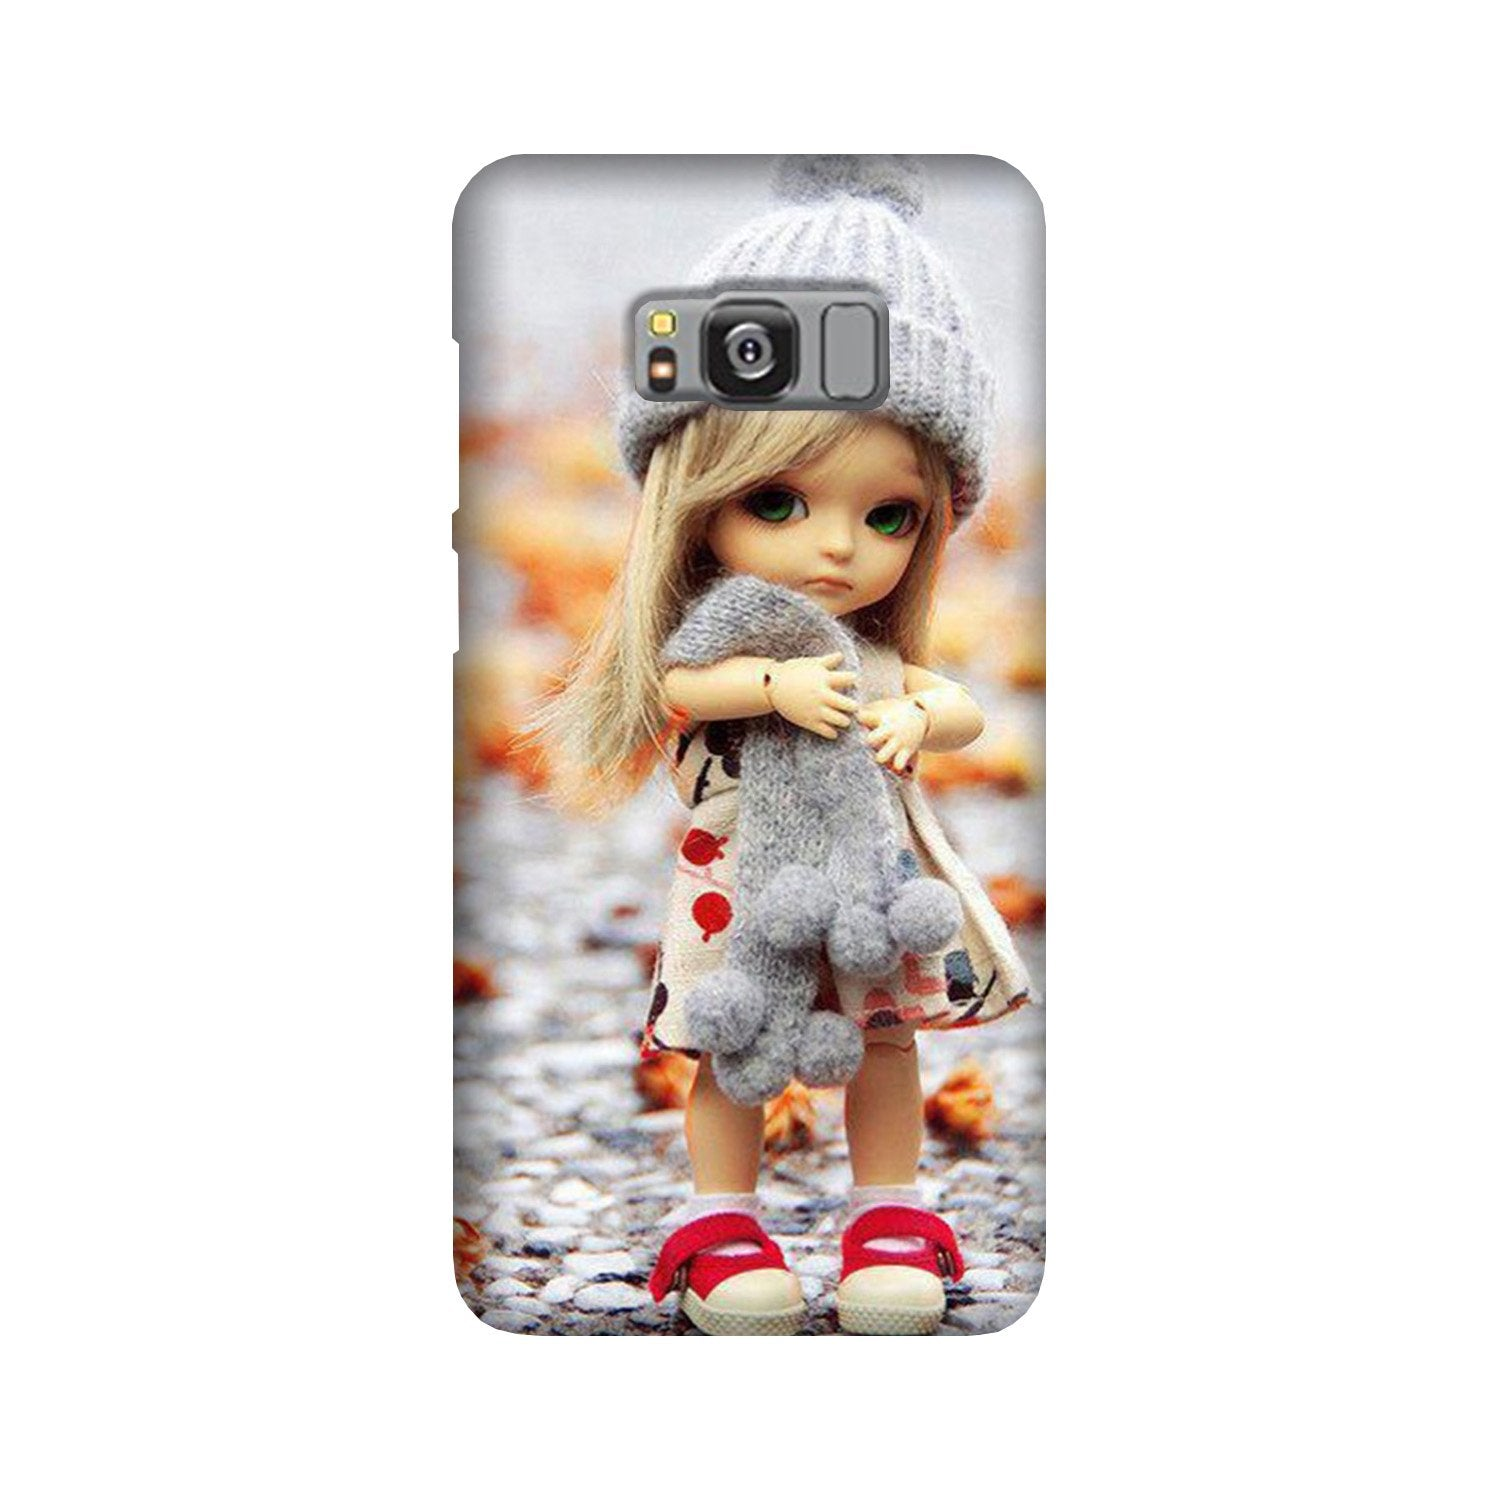 Cute Doll Case for Galaxy S8